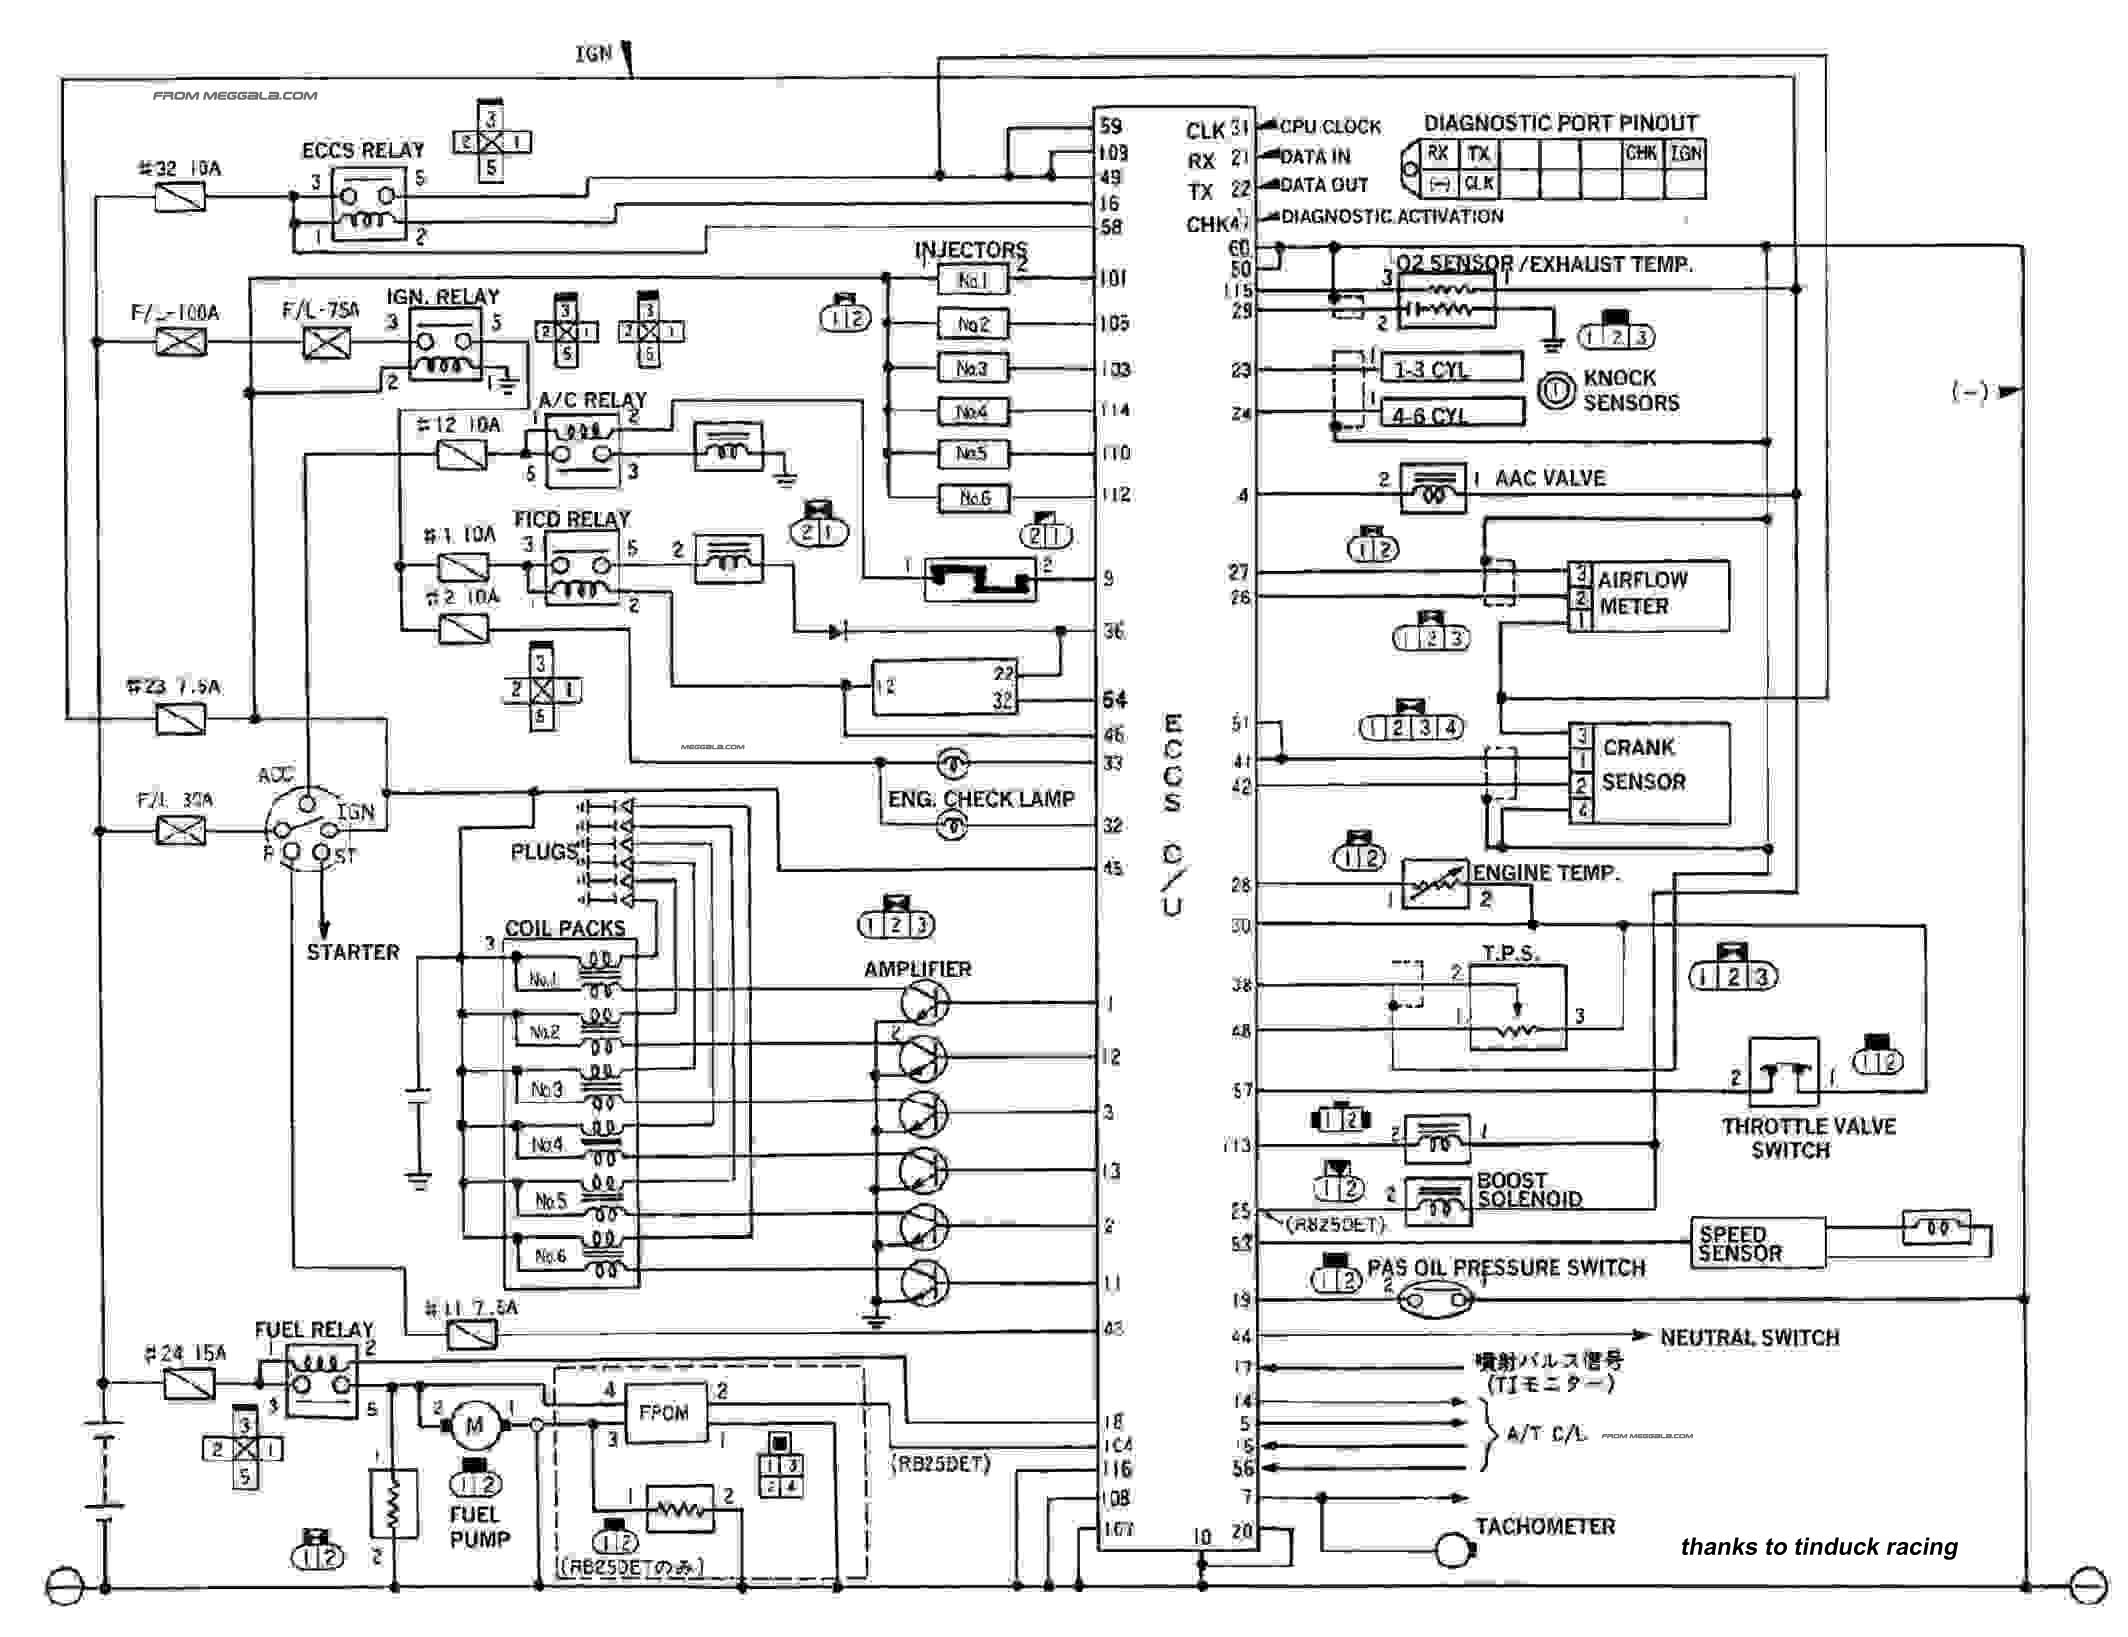 S14 Body Wiring Diagram Diagrams Blue Bird Transit Bus Engine Nissan Documents Bluebird 1994 Chassis